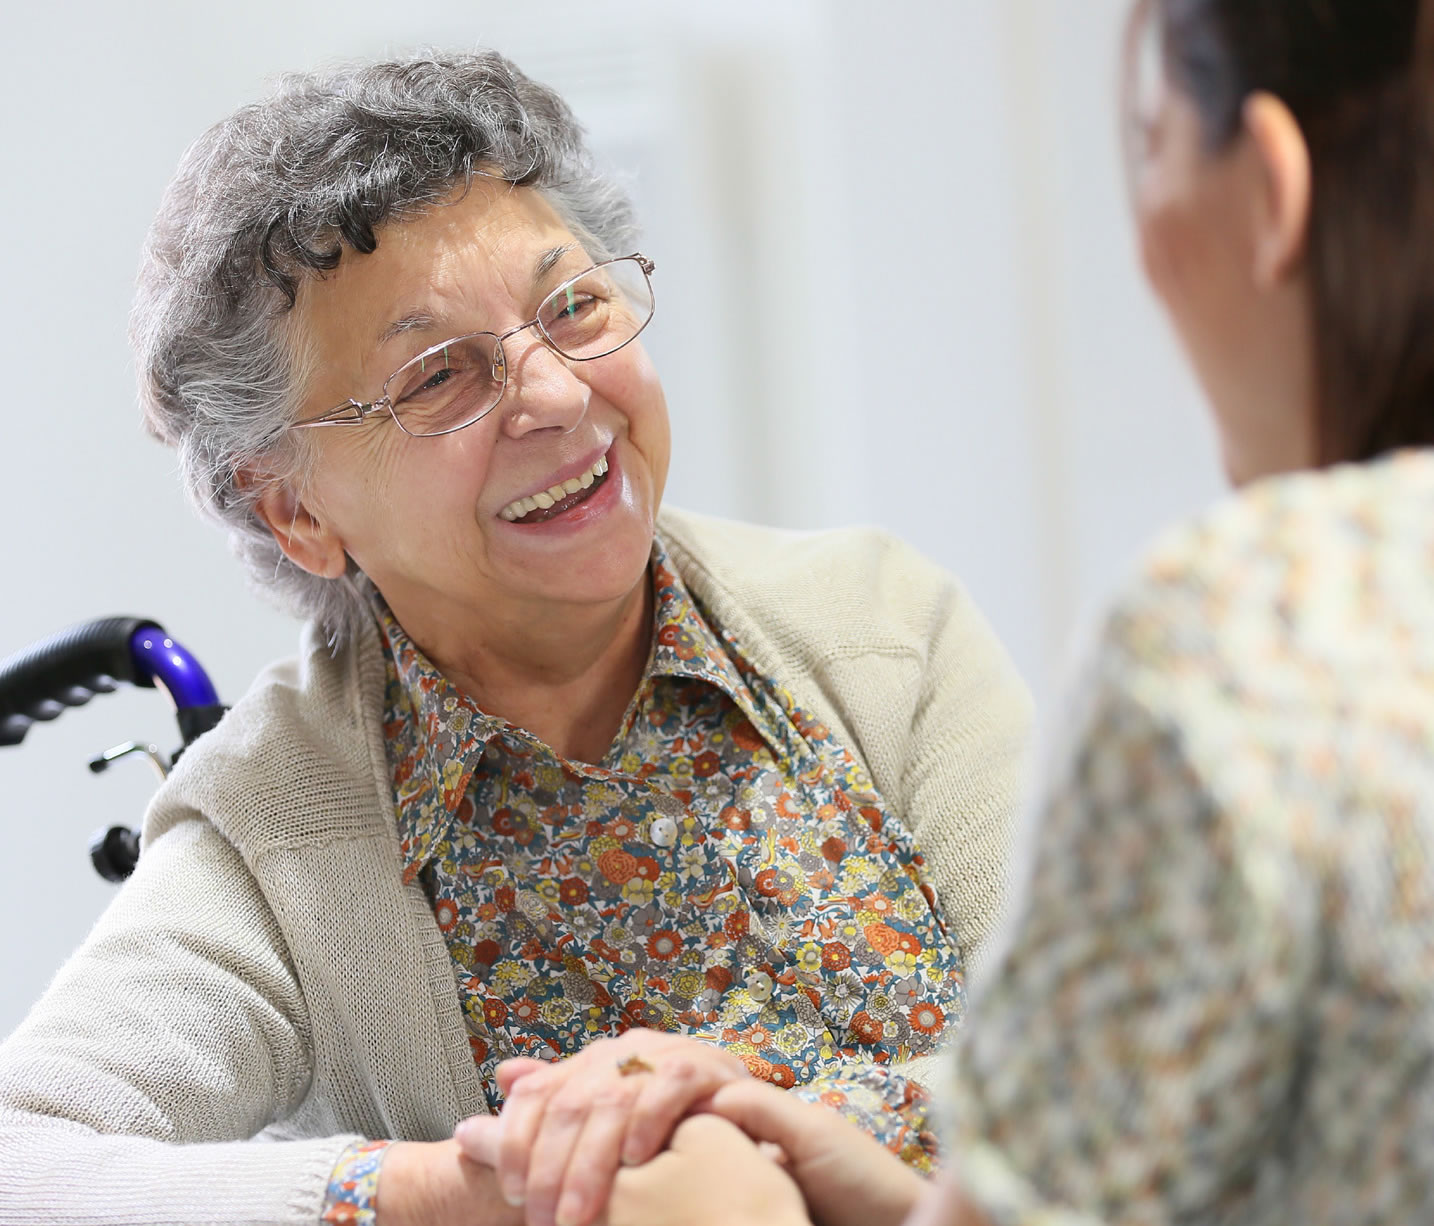 Smiling elderly lady at day care